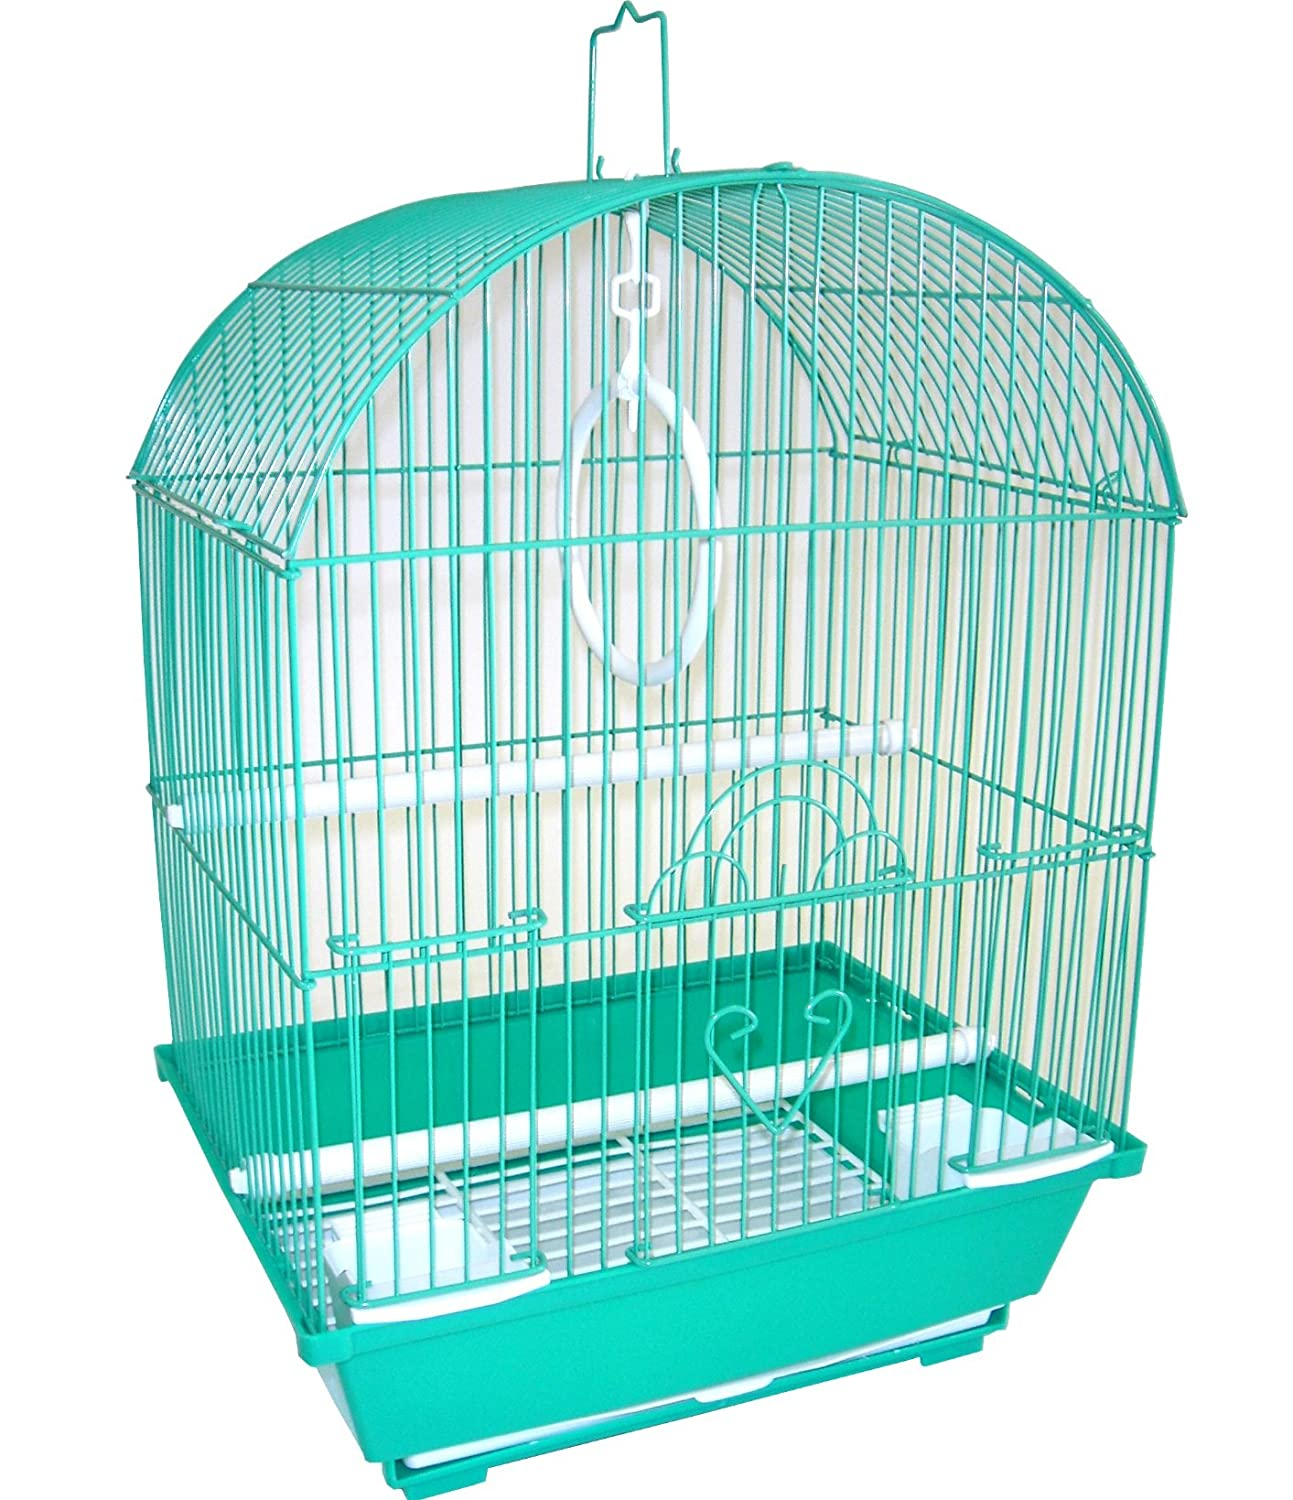 YML A1104GRN Round Top Style Small Parakeet Cage, 11 x 9 x 16 YML GROUP INC